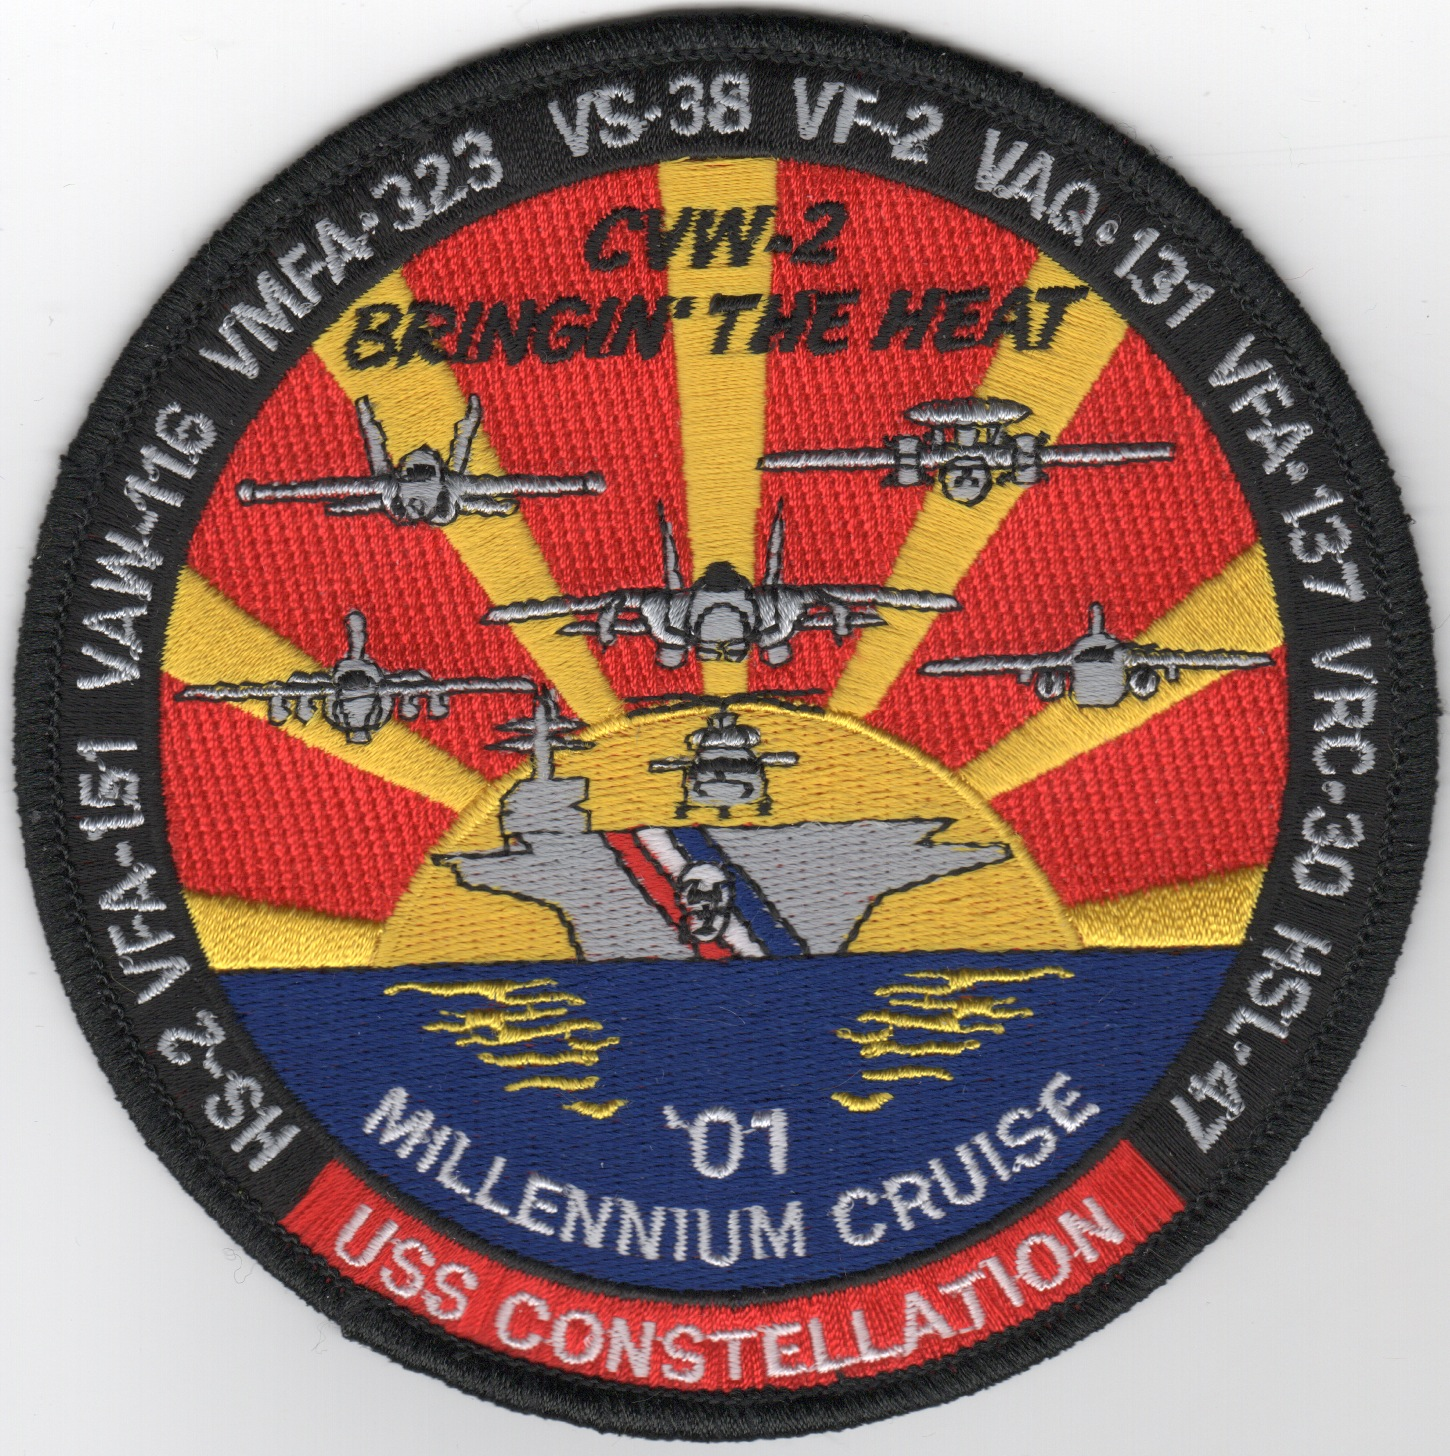 CV-64/VF-2 2001 'Millenium' Cruise Patch (Lg/Round)